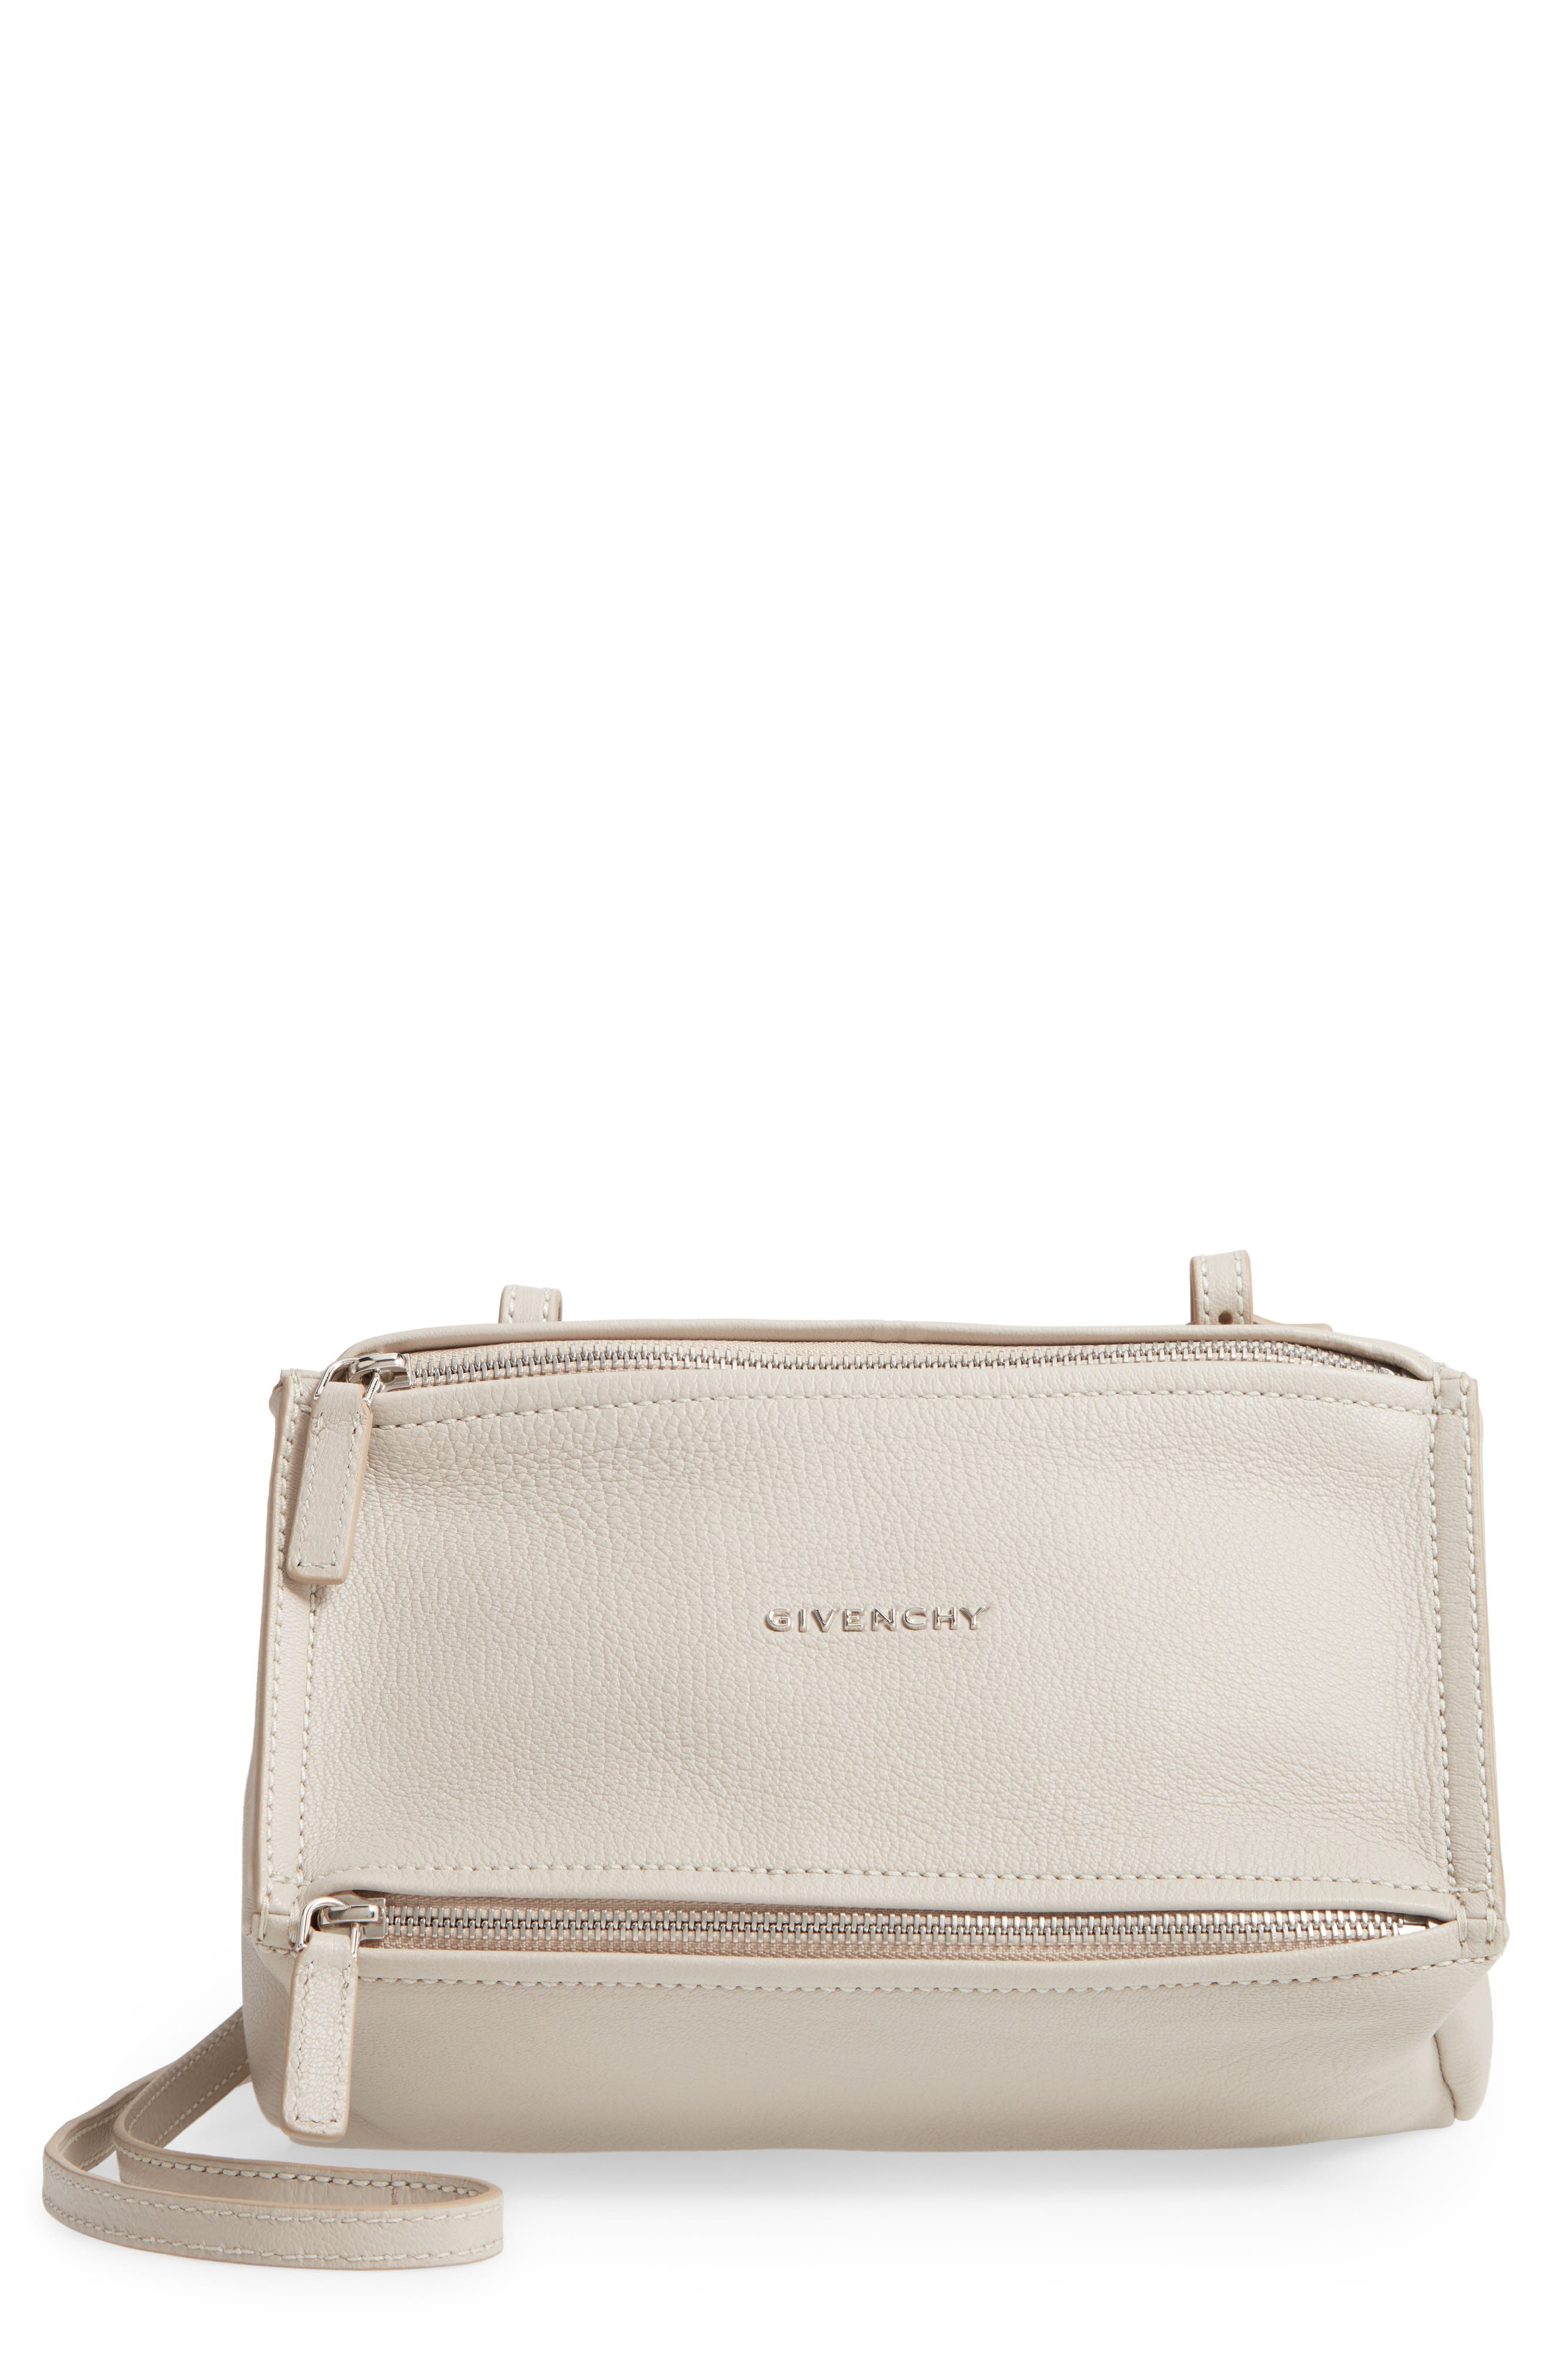 Givenchy Handbags   Wallets for Women  5a528367703d8